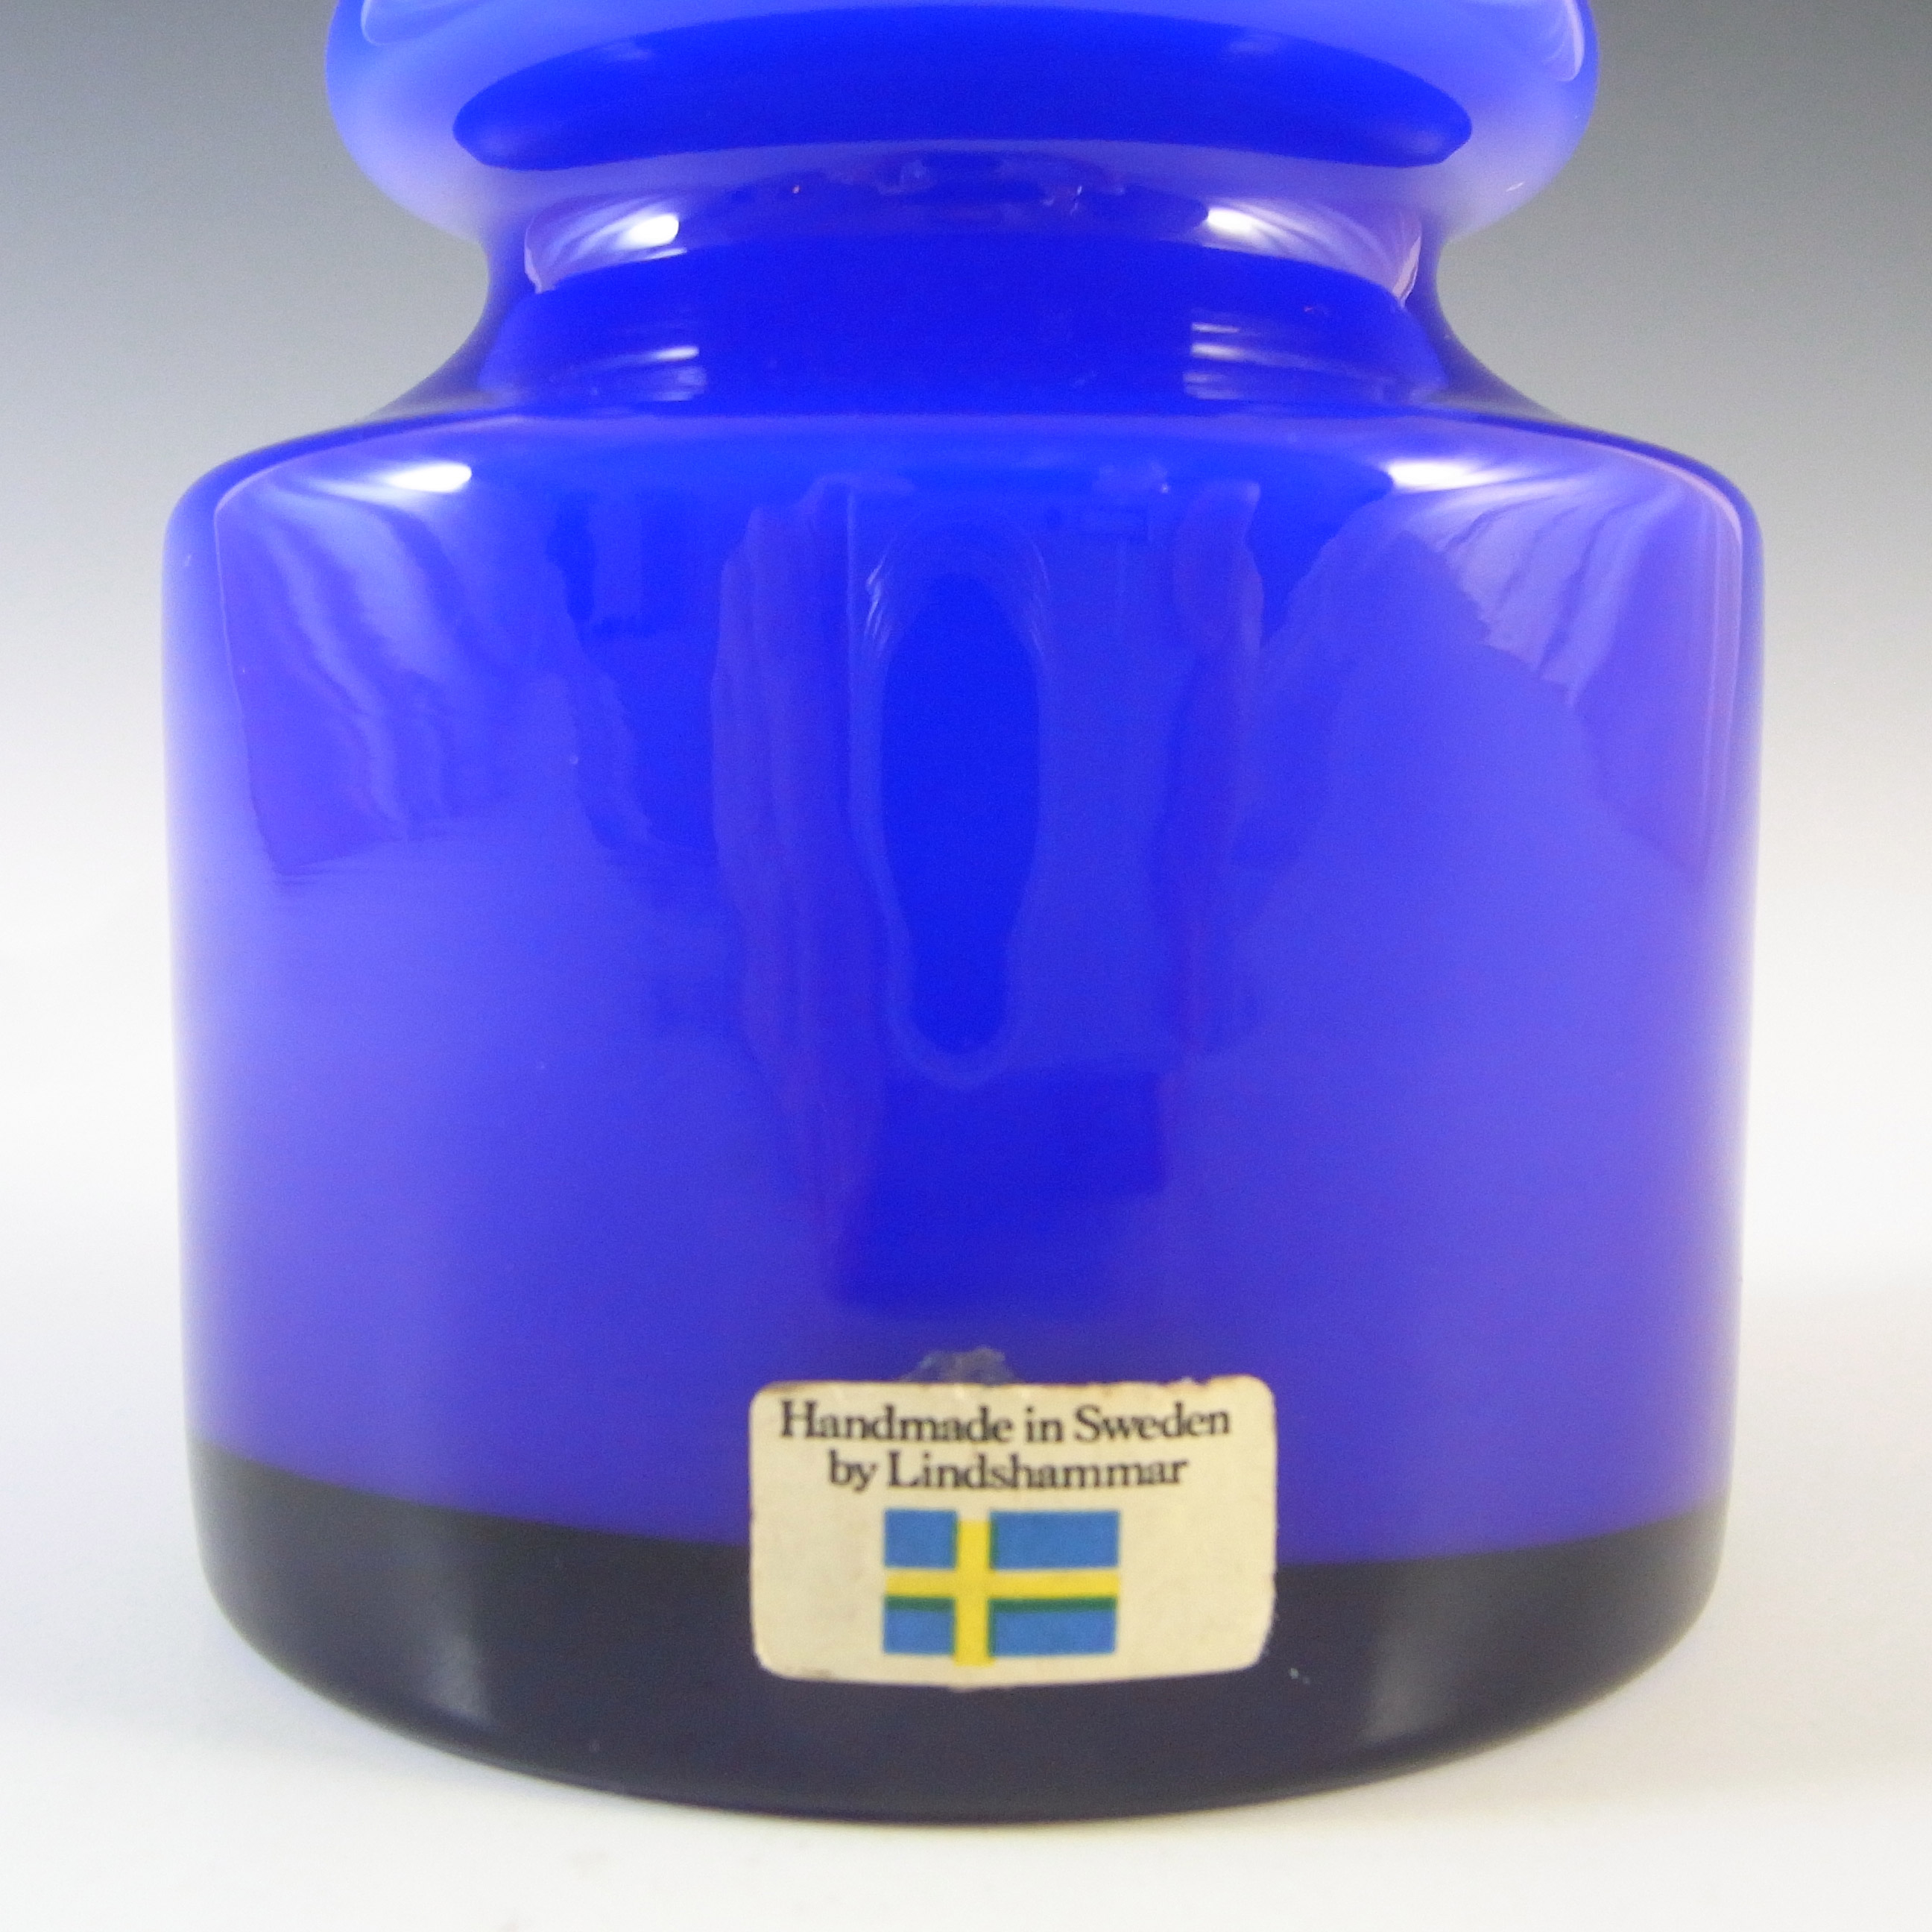 LABELLED Lindshammar Swedish Blue Cased Hooped Glass Vase - Click Image to Close